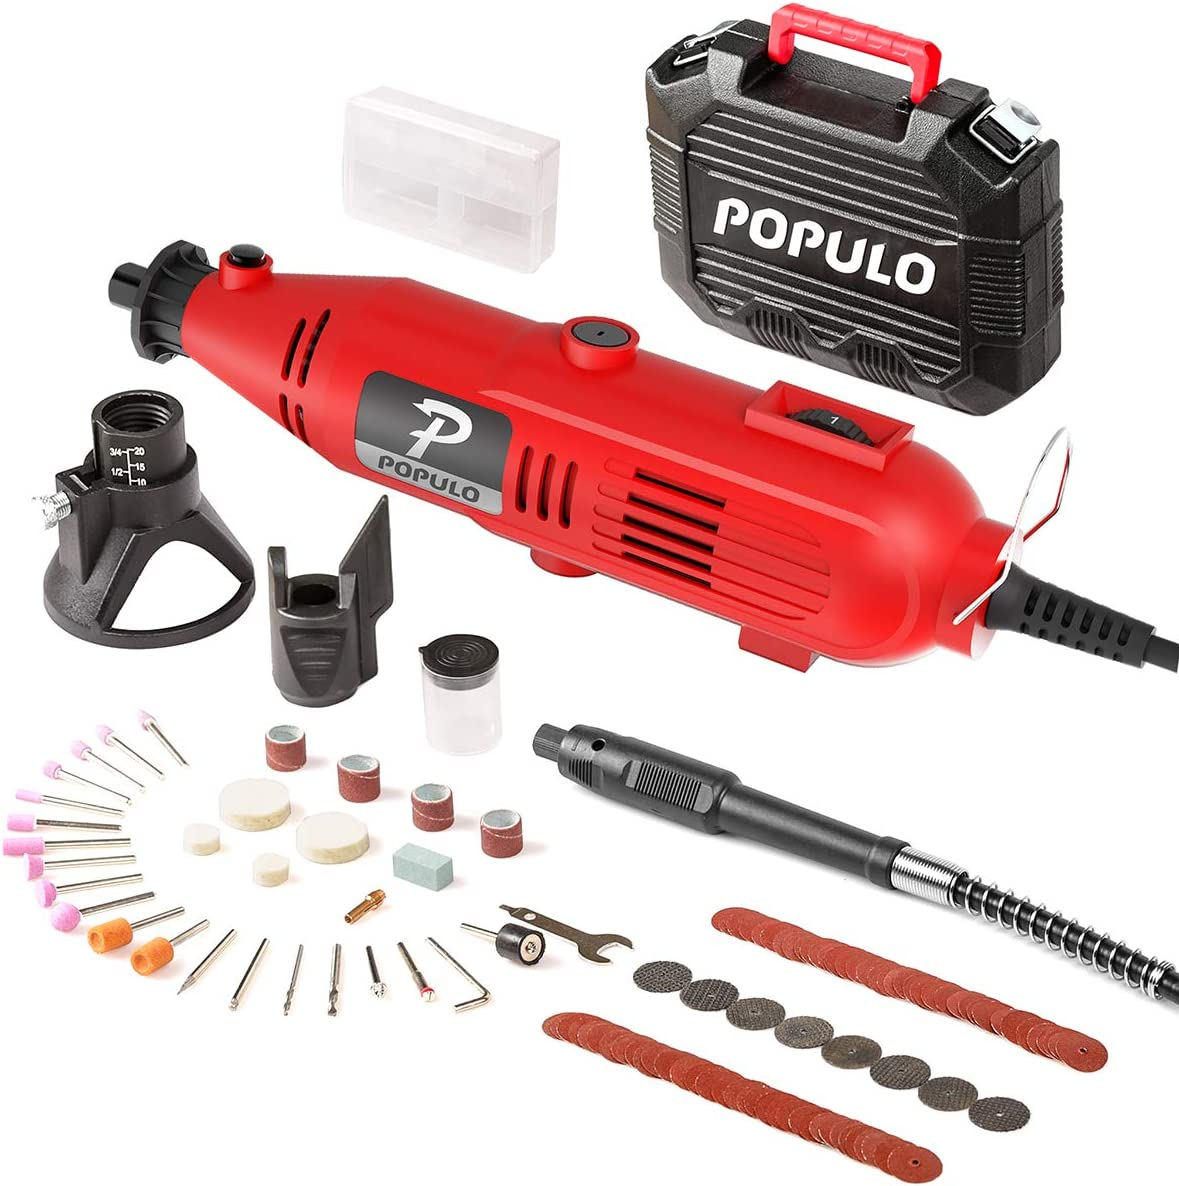 Populo High-Performance Rotary Tool Kit